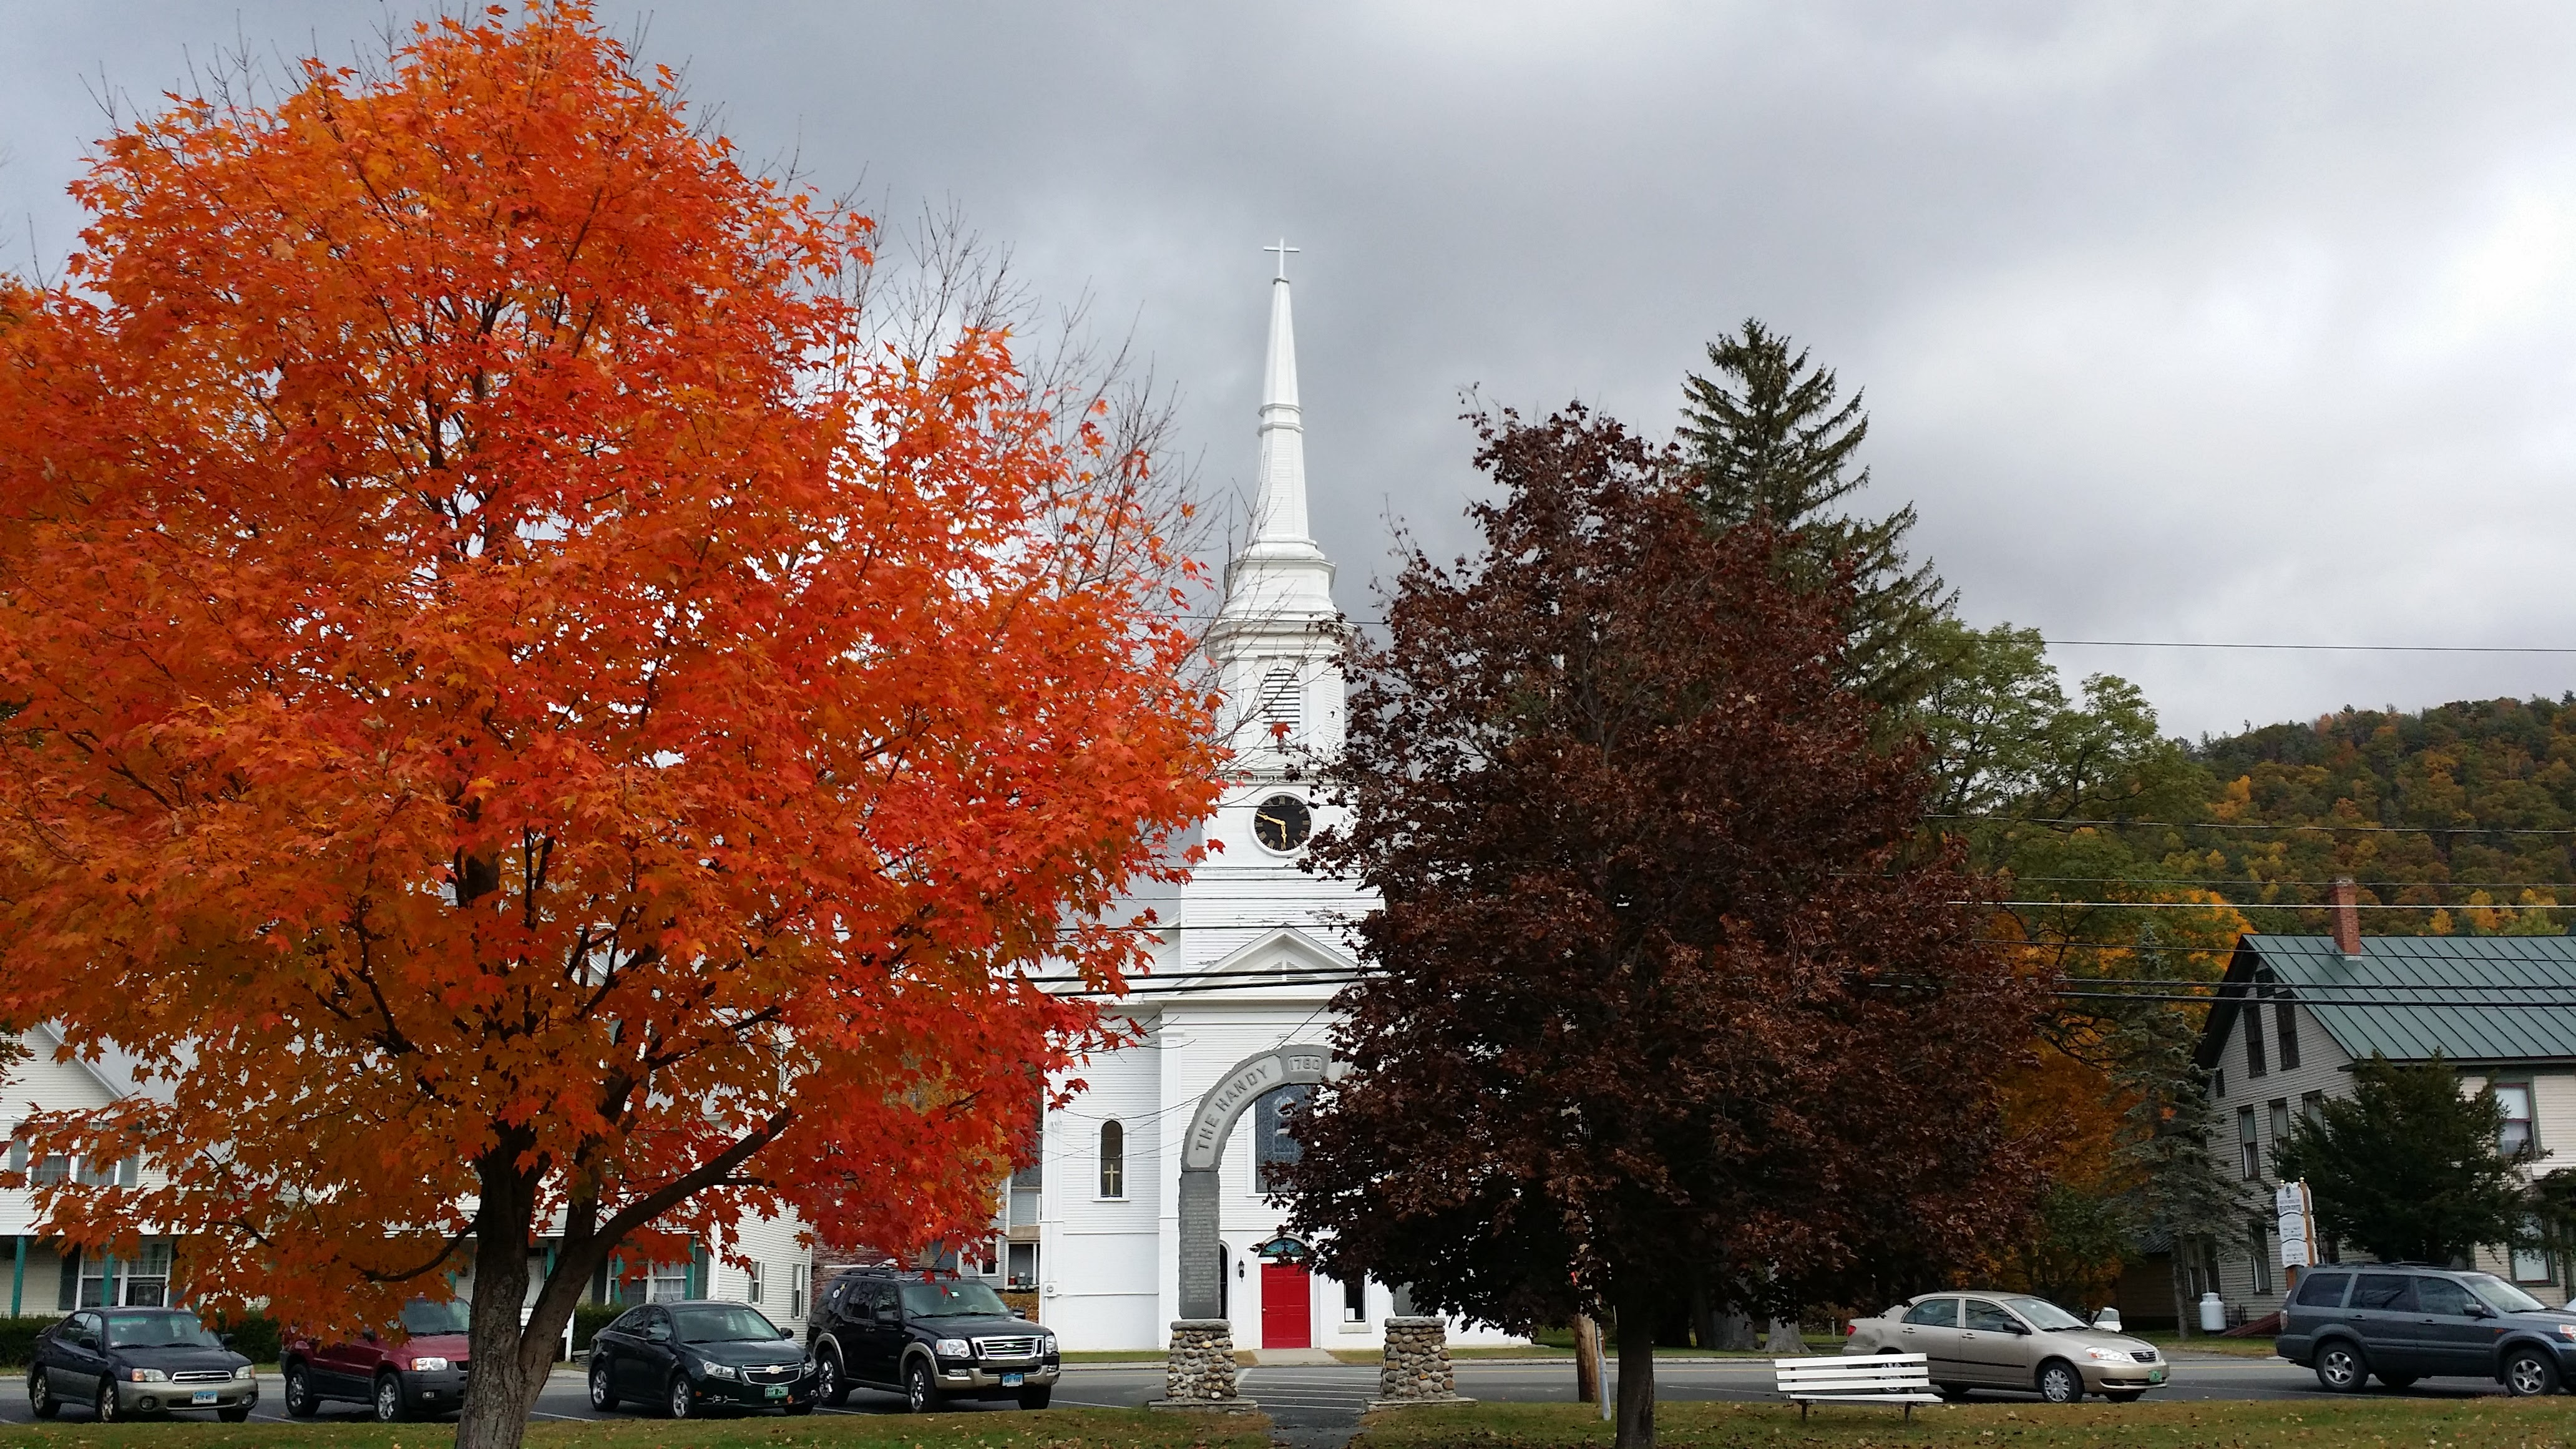 An image of the Red Door Church (United Church) taken by Pastor Josh Moore in the fall of 2015. The Red Door can be seen clearly through the Handy Memorial ... & Red Door Church - Red Door Church